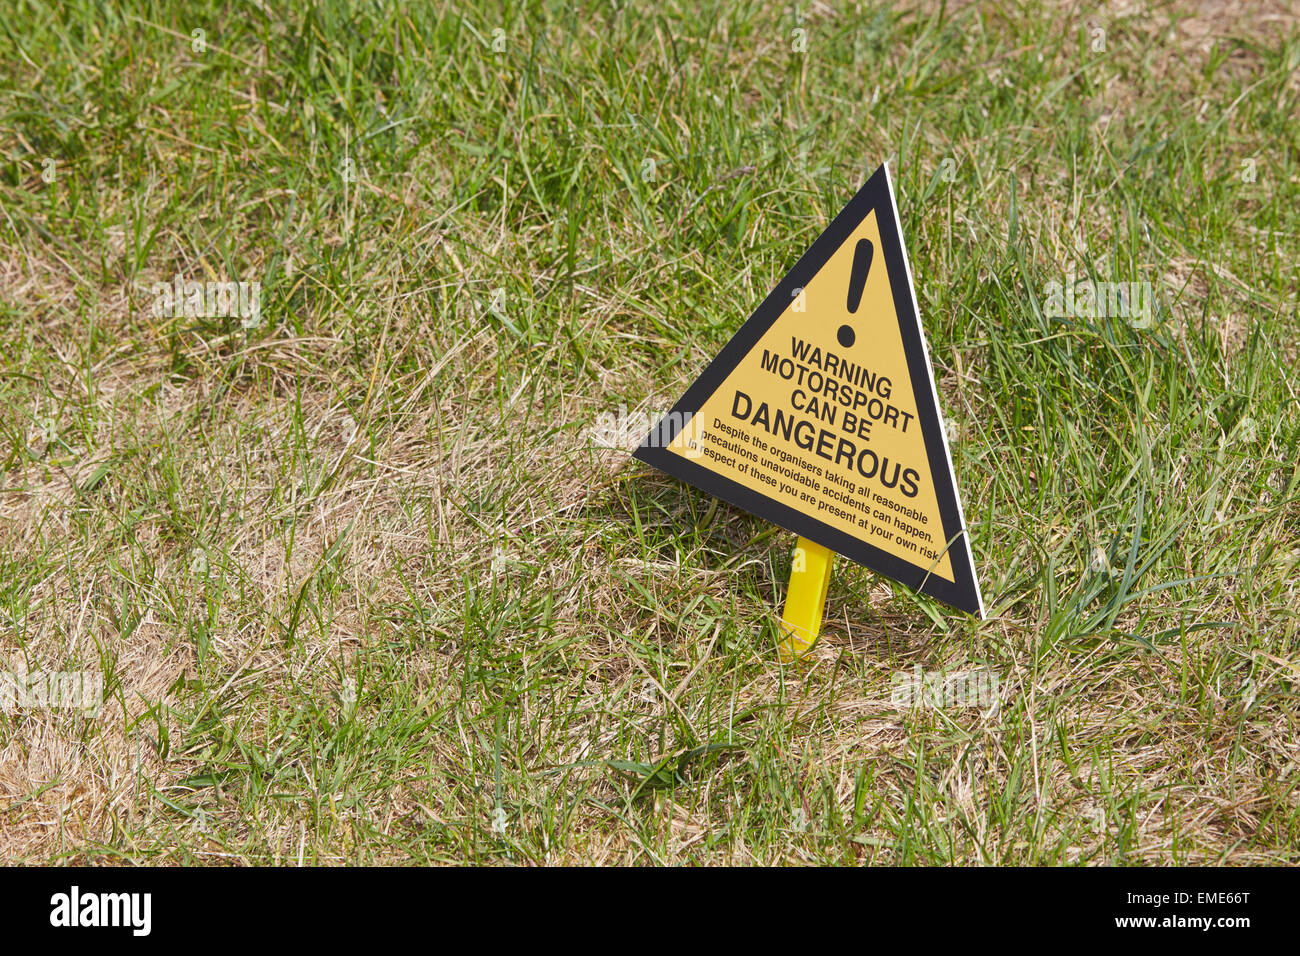 Sign reading Warning Motorsport ican be Dangerous at the Santa Pod Raceway - Stock Image